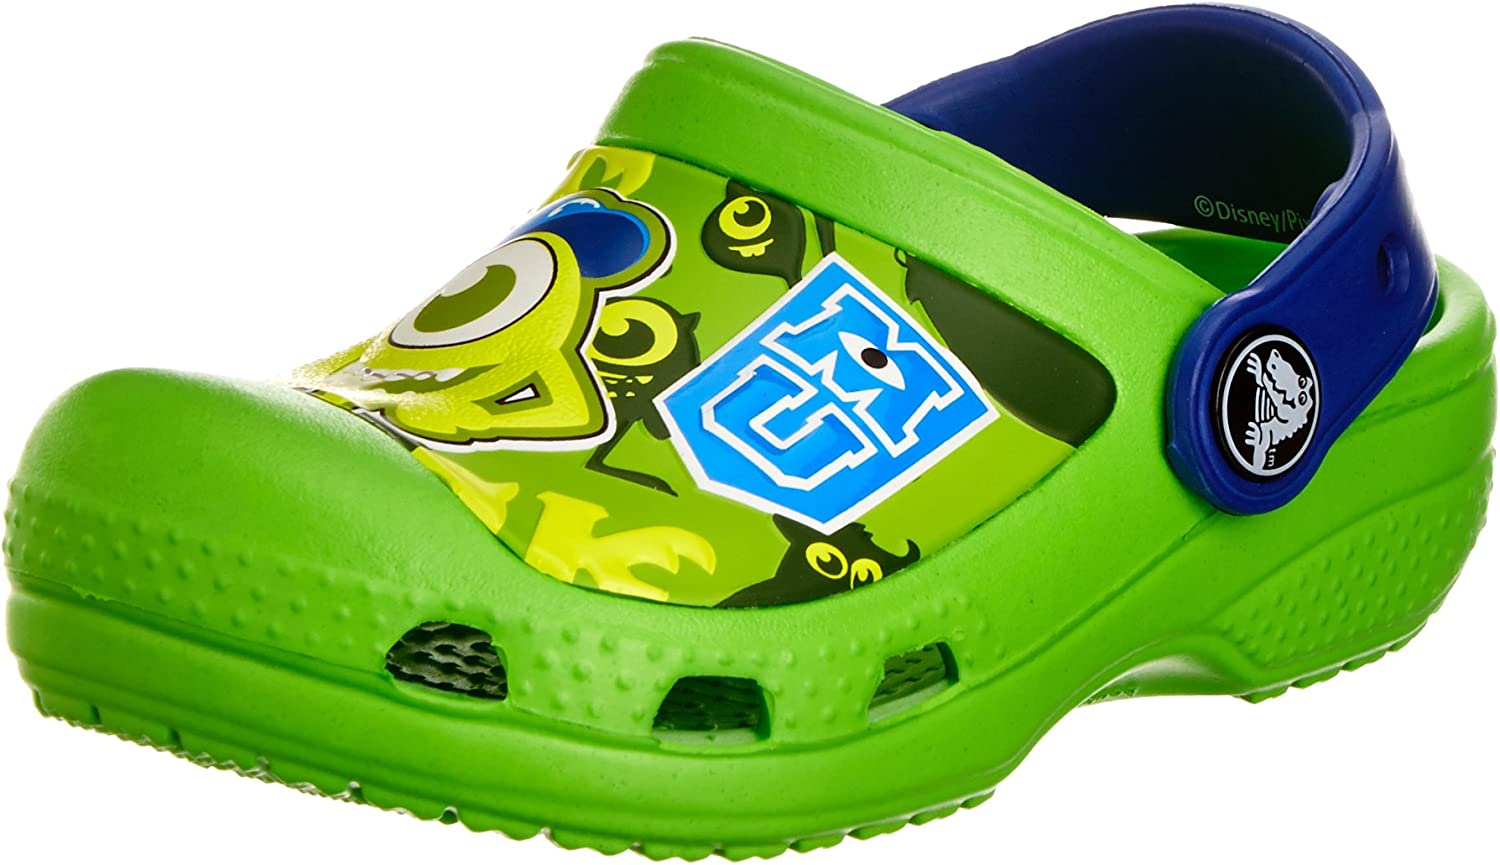 Crocs Unisex Kids Crocsfunlab Lights Mnsttrk//Gpt Clogs